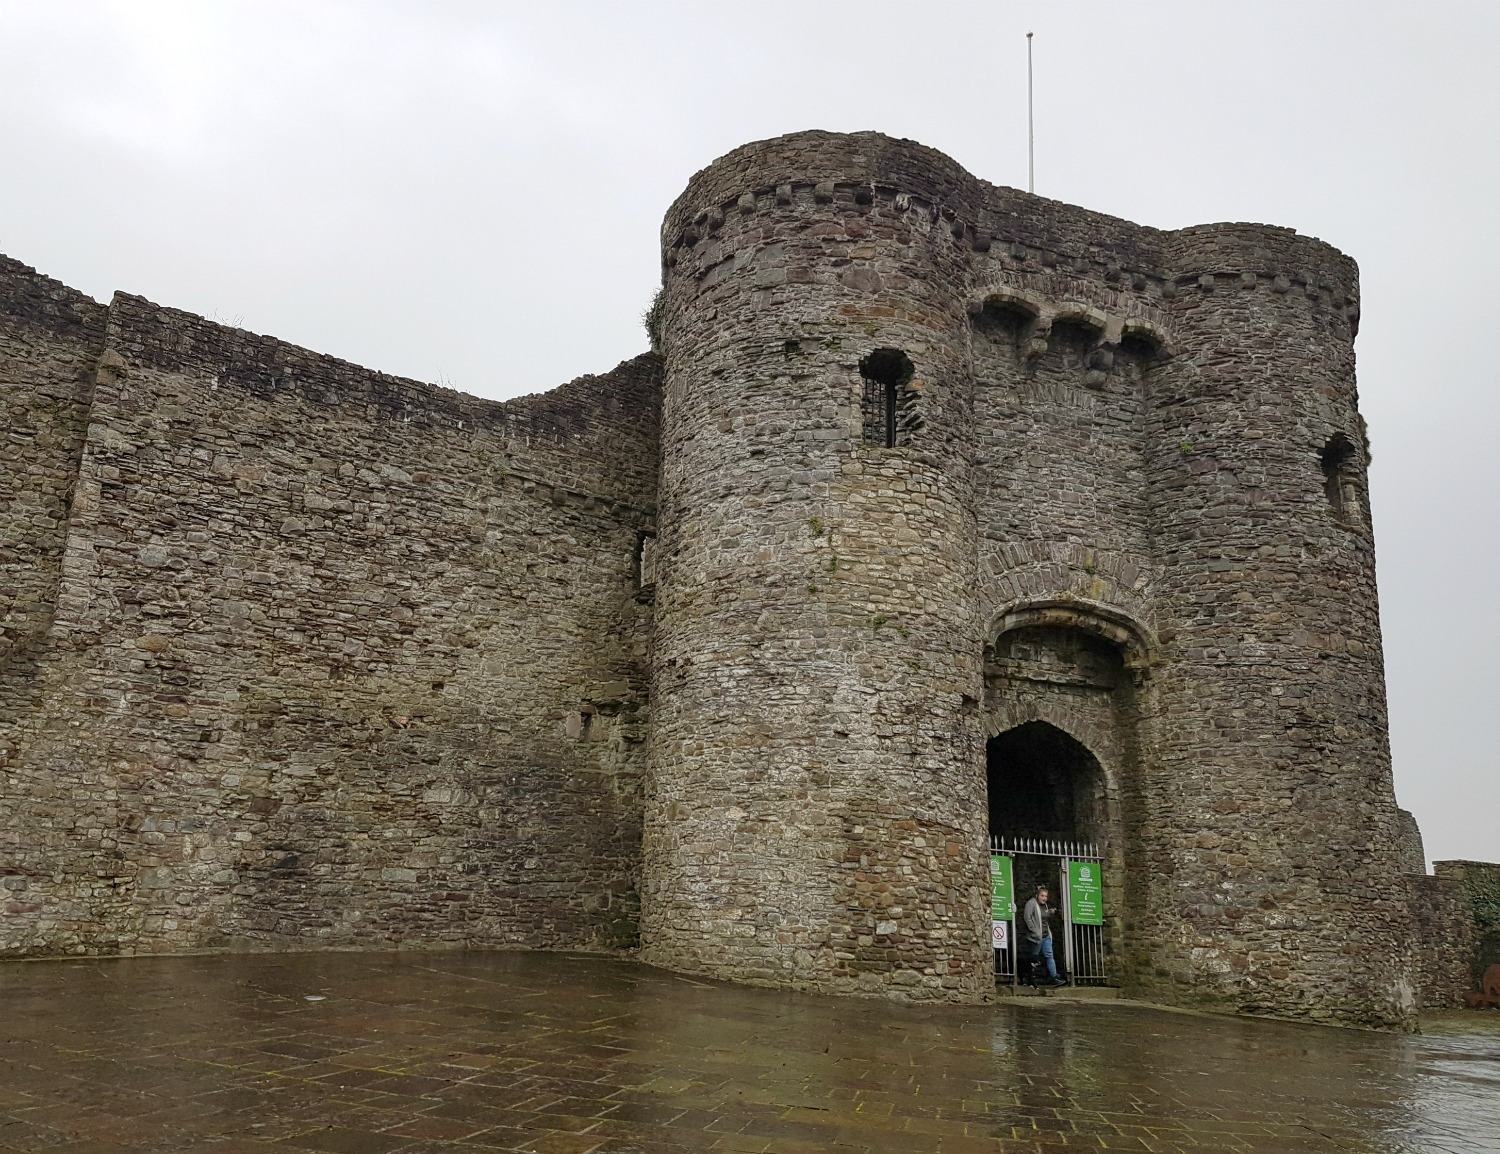 Part of the ruins of Carmarthen Castle in Wales - on our journey to discover Welsh legends